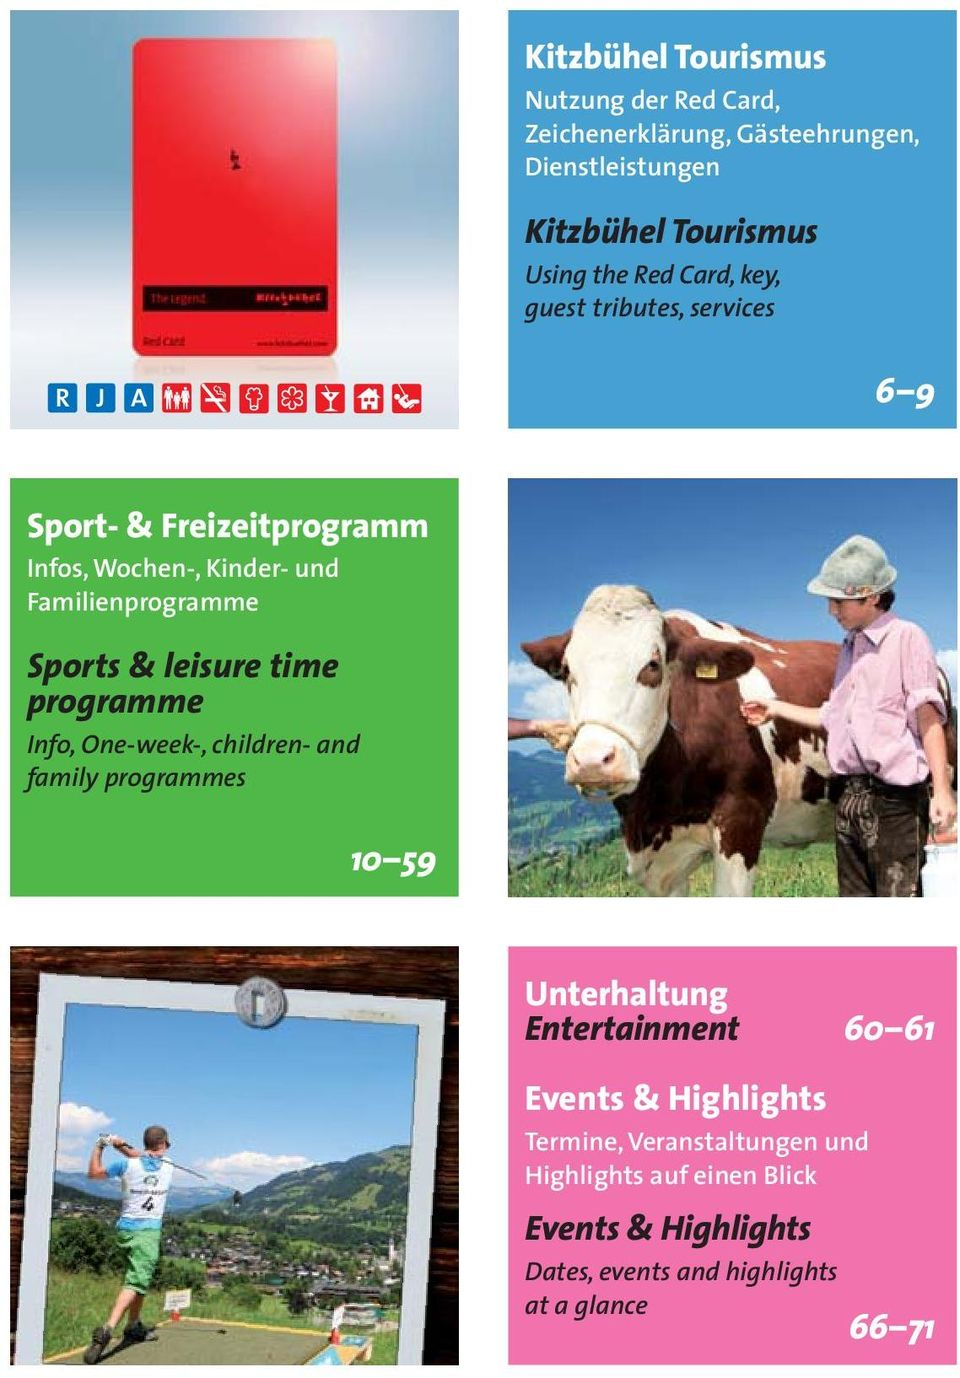 leisure time programme Info, One-week-, children- and family programmes 10 59 Unterhaltung Entertainment 60 61 Events &